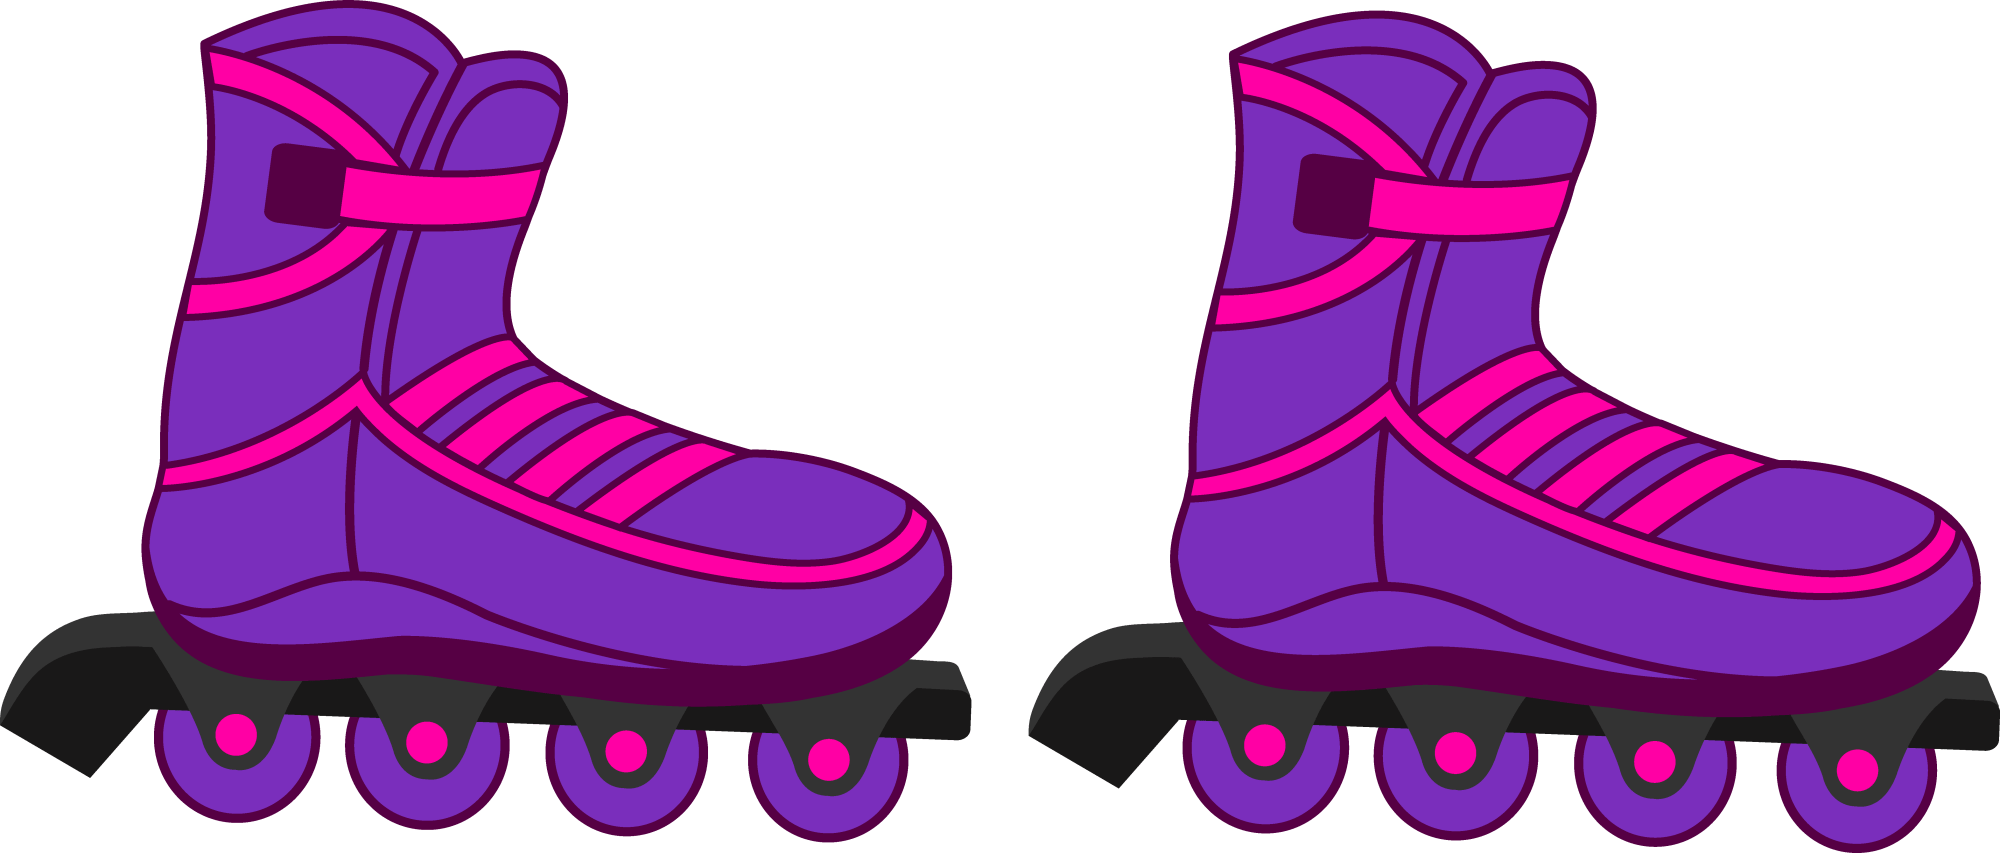 hight resolution of 8285x3534 figurine clipart roller skating